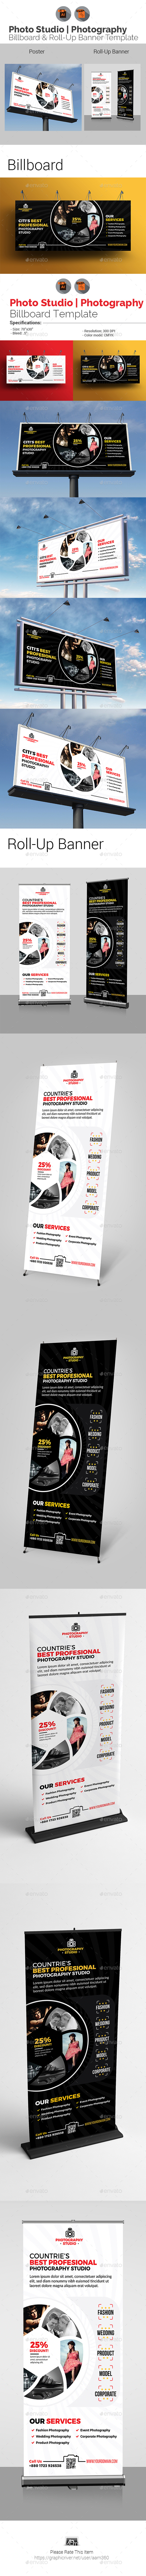 Photo Studio | Photography Signage Bundle - Signage Print Templates